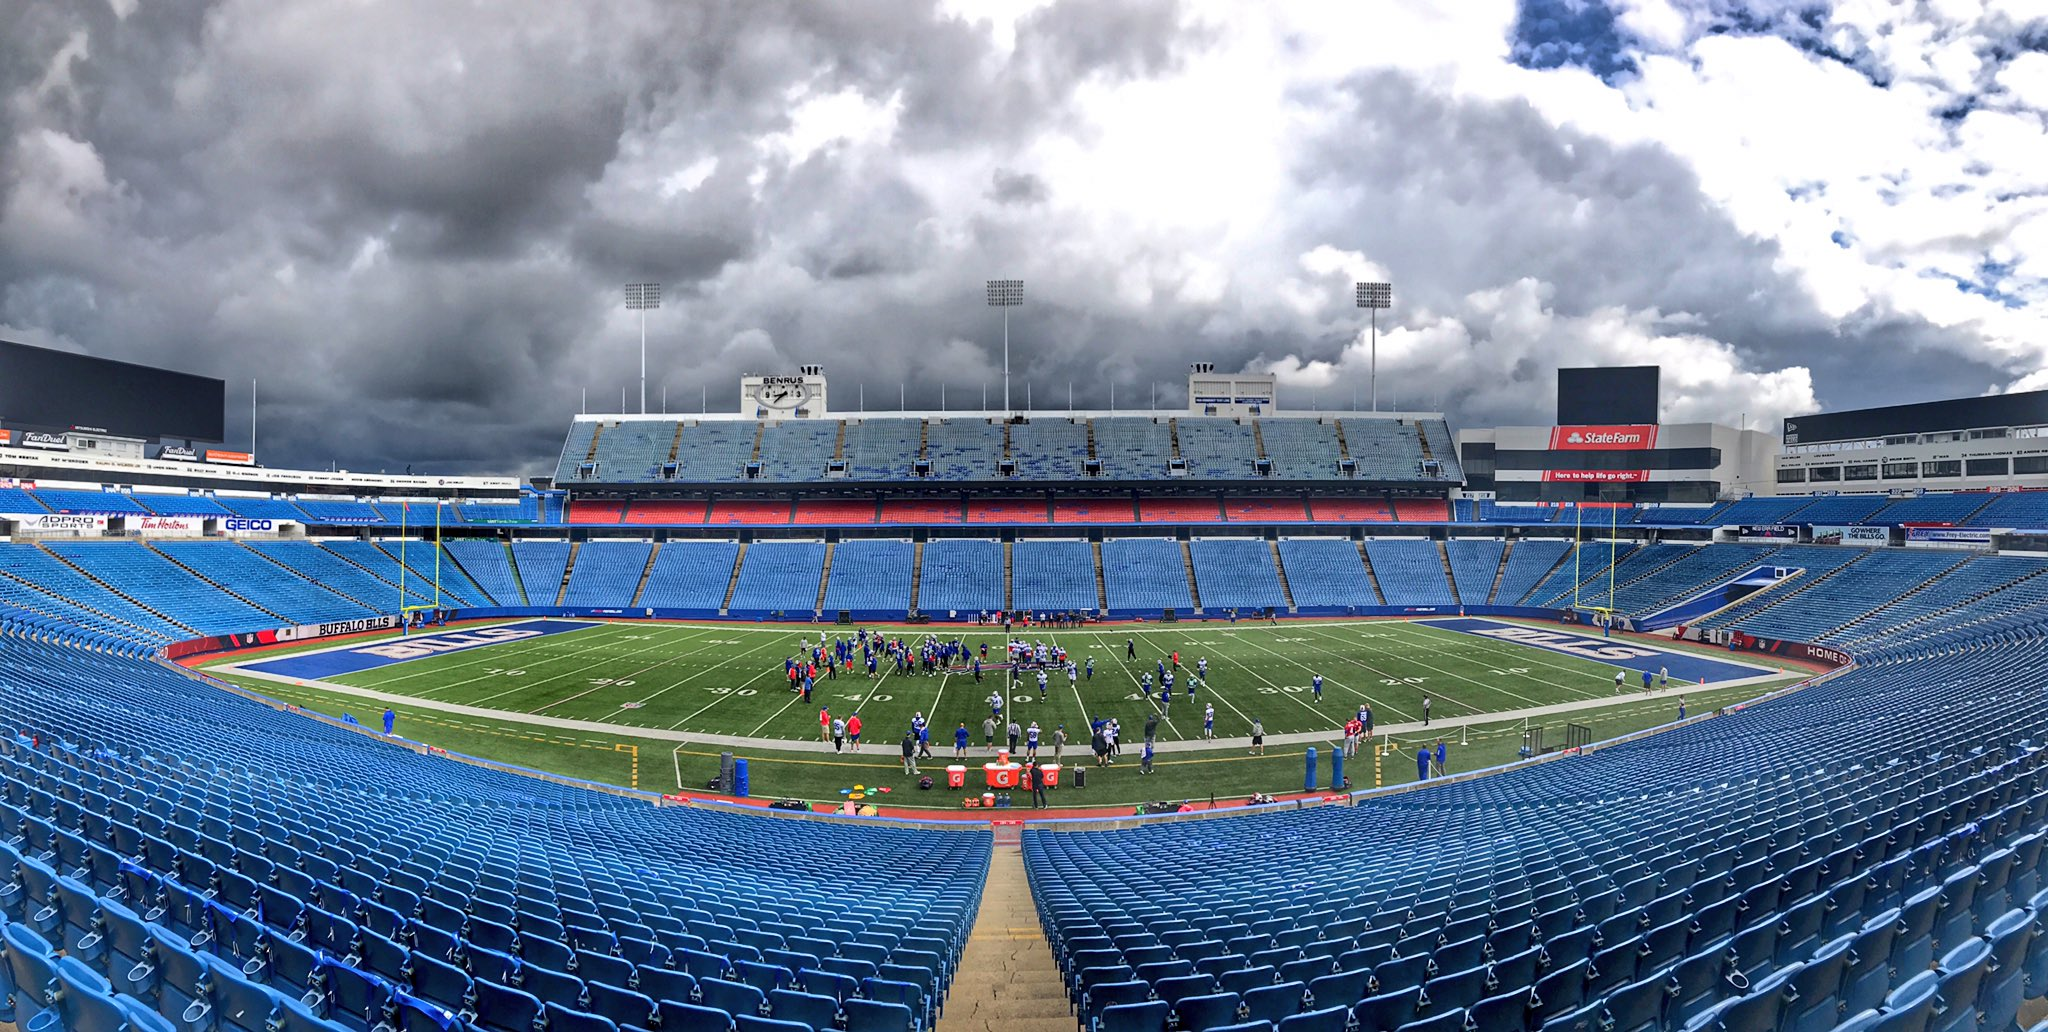 Two days until you're right here with us. ✊️ #GoBills https://t.co/RnJwanWxgH